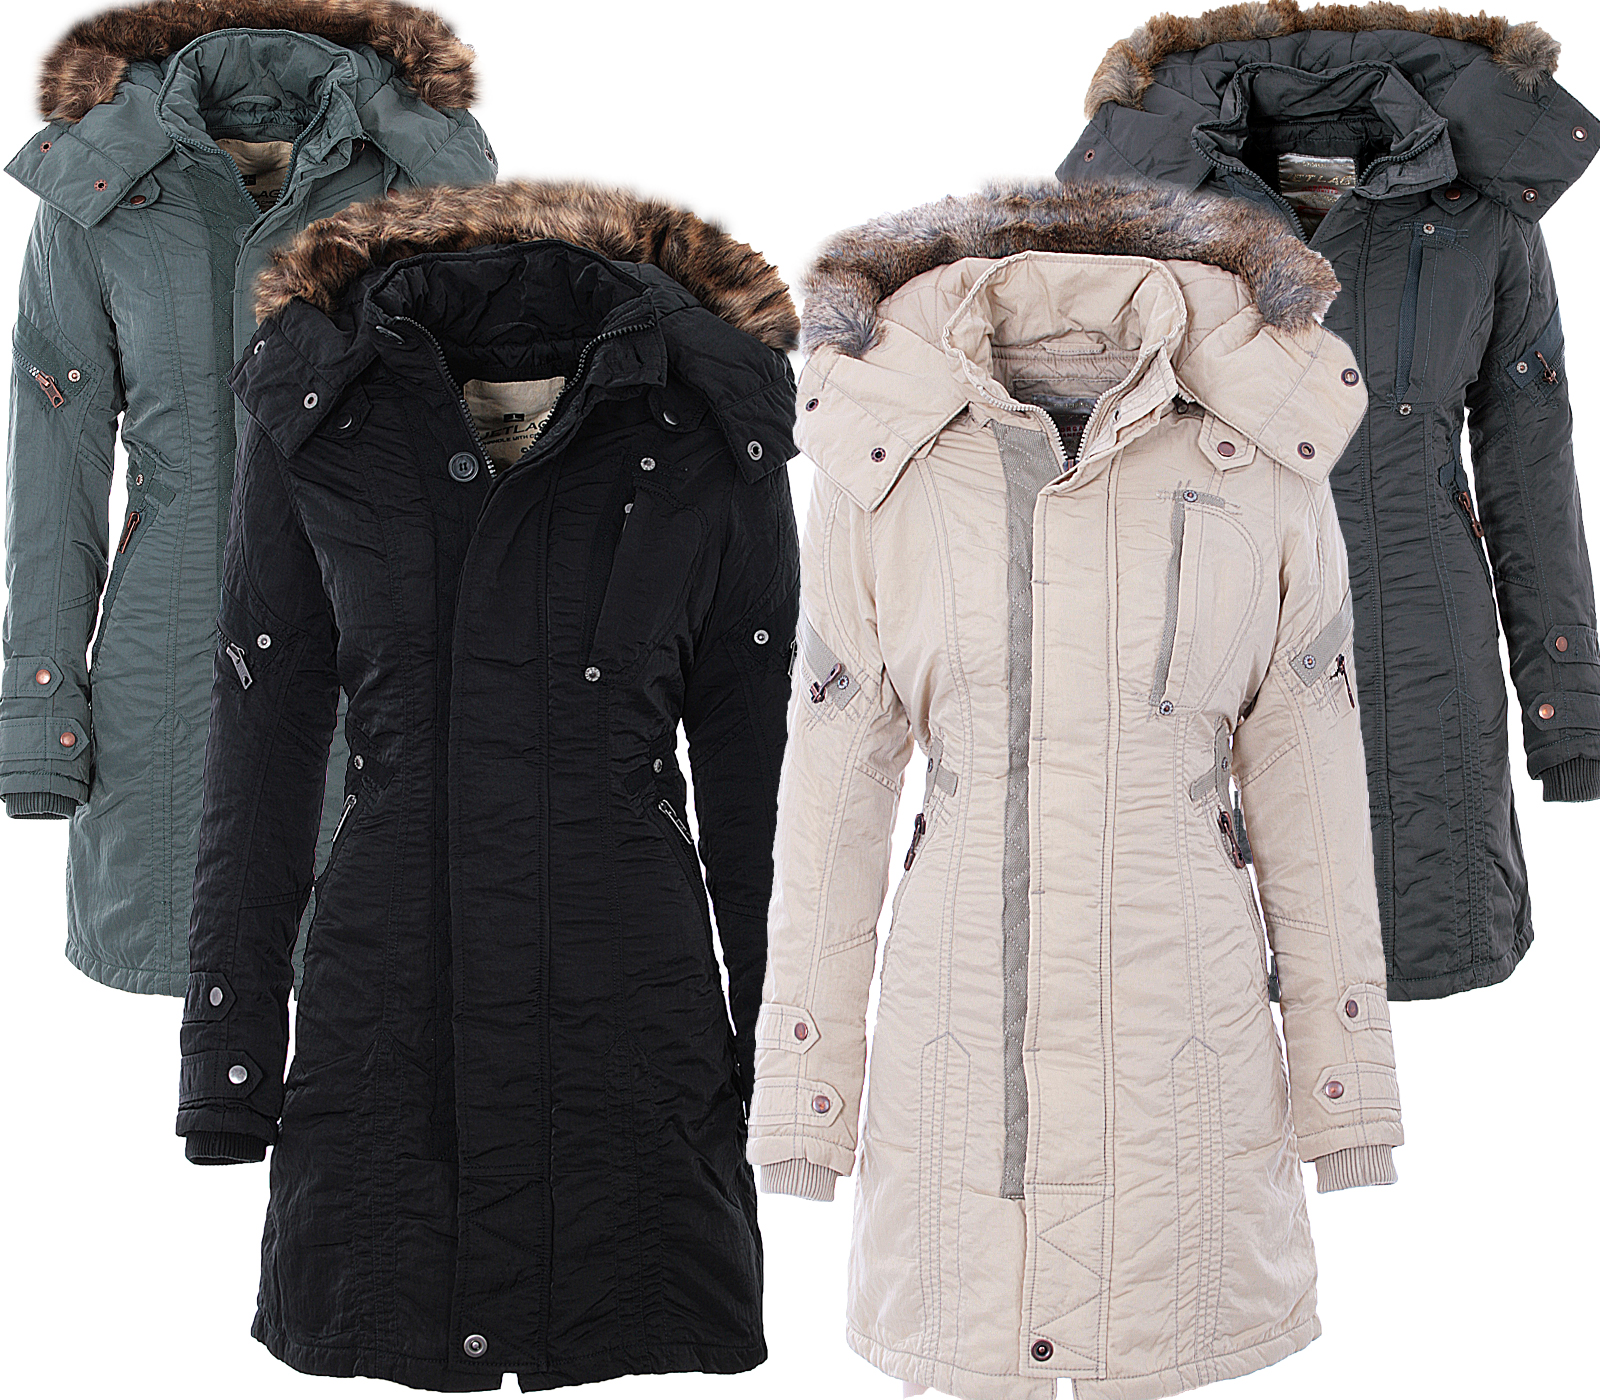 Lange jacke winter damen